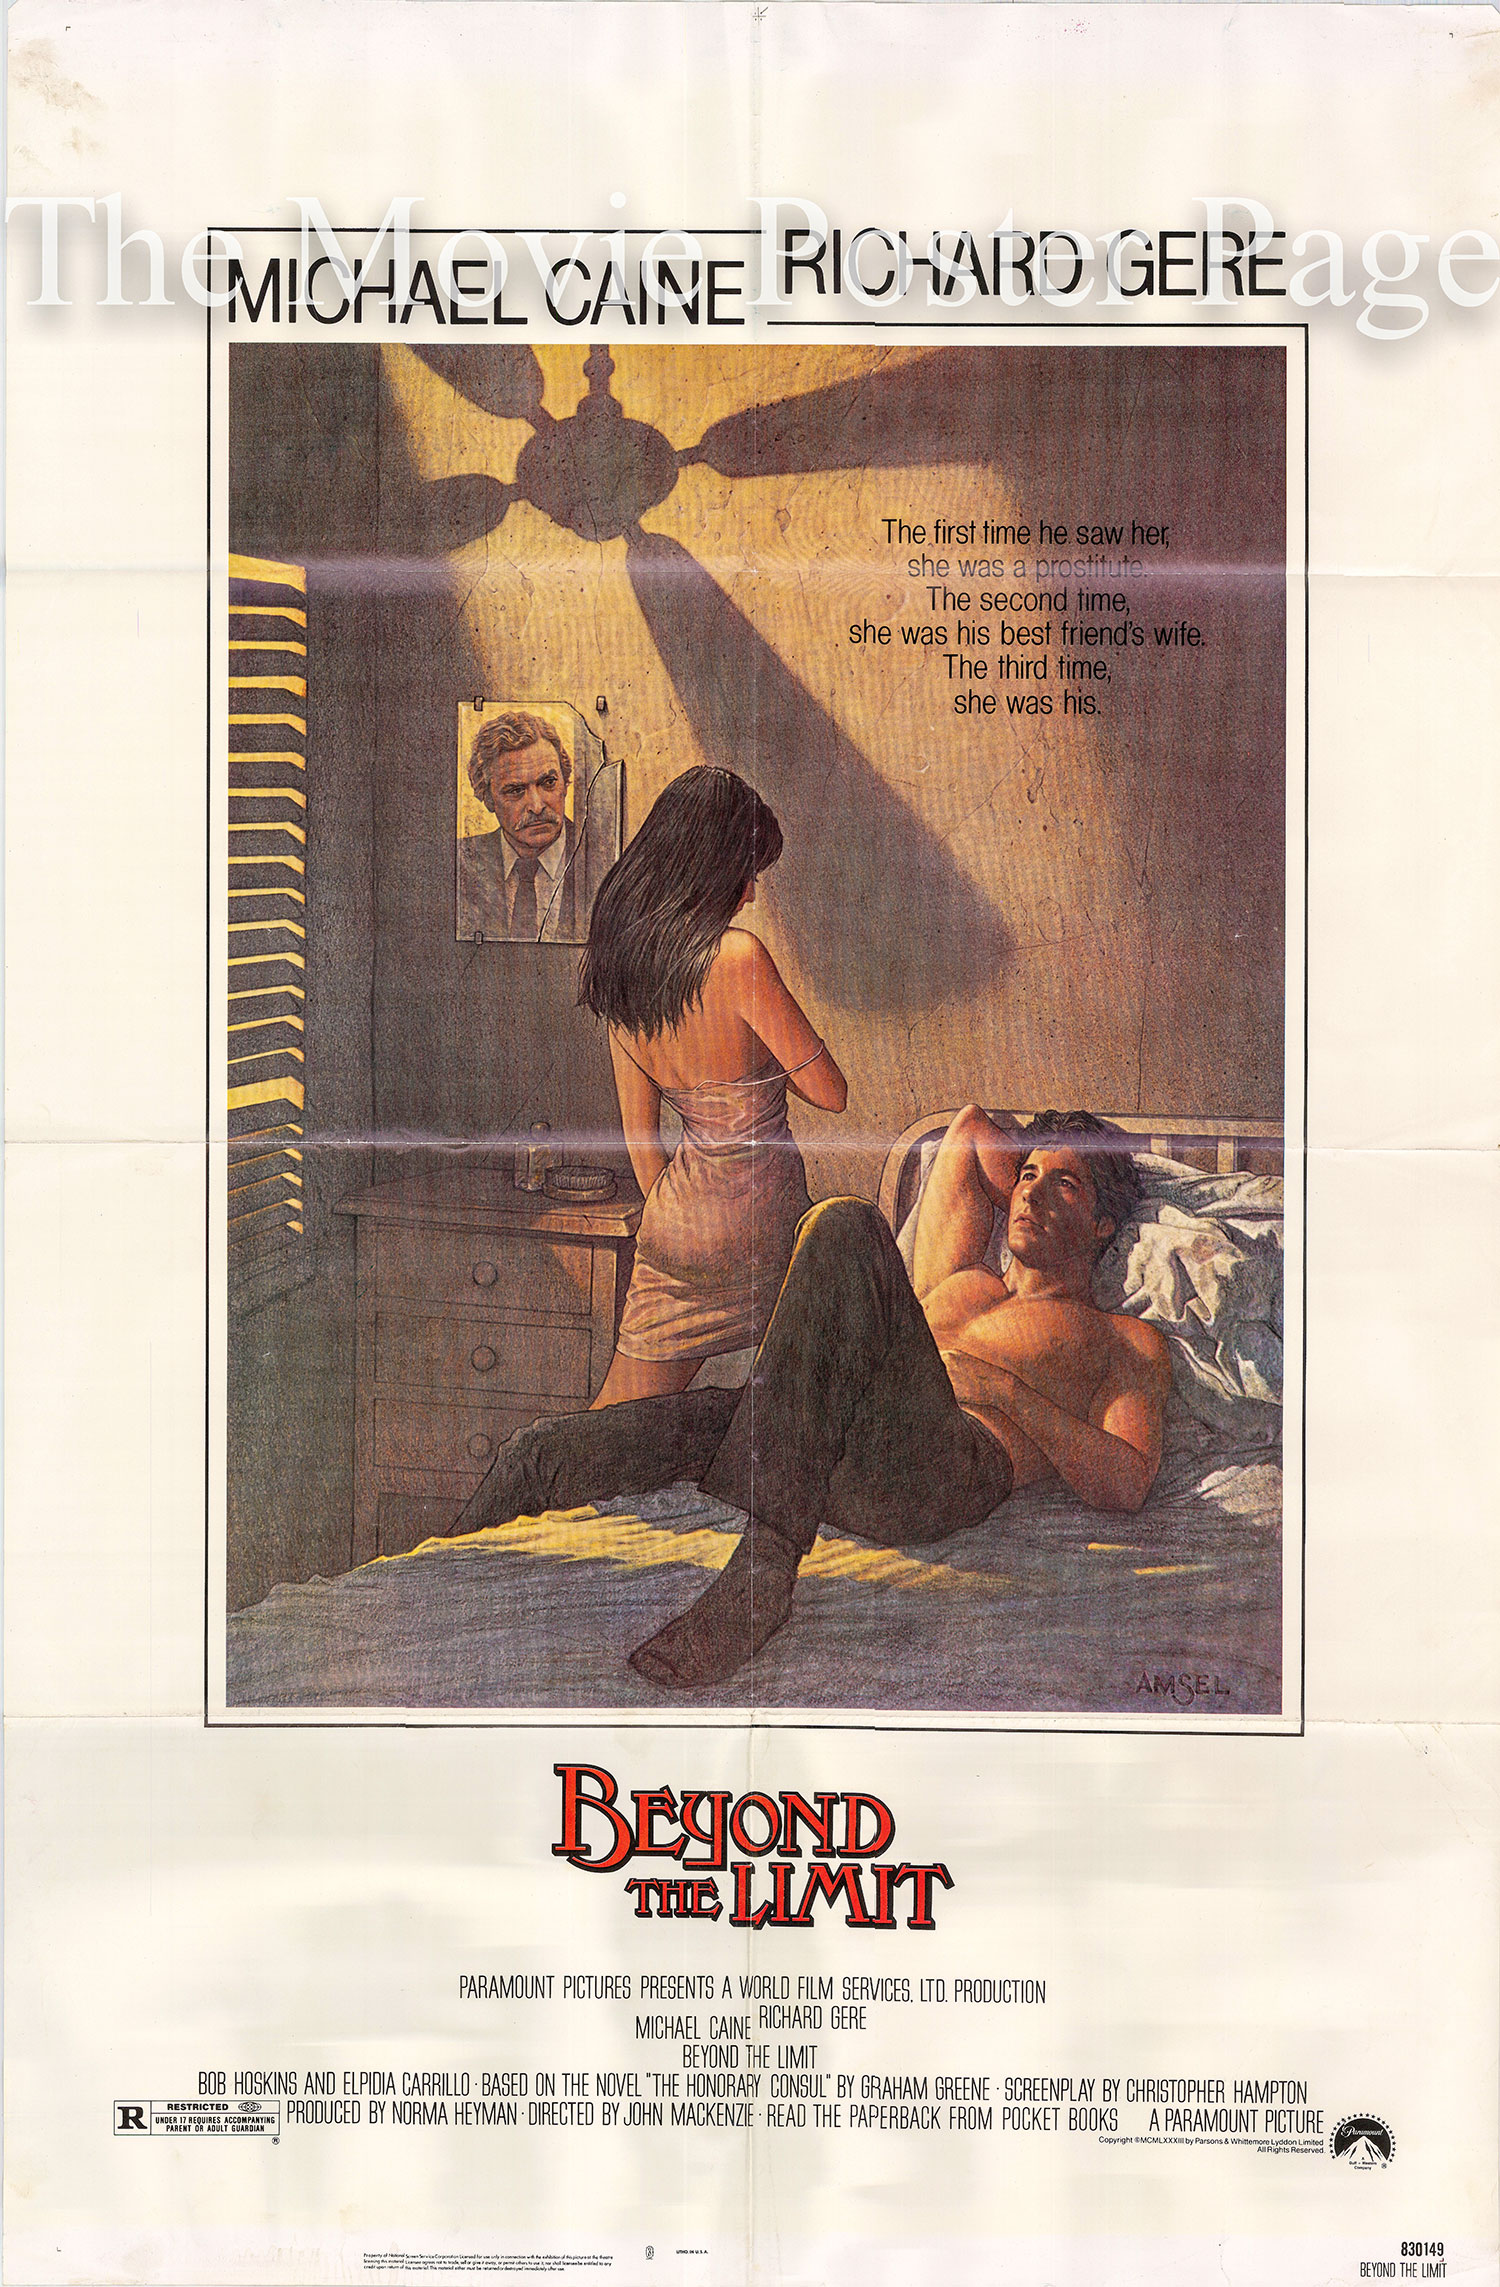 Pictured is a US one-sheet  promotional poster for the 1983 John Mackenzie film Beyond the Limit starring Richard Gere and Michael Caine.